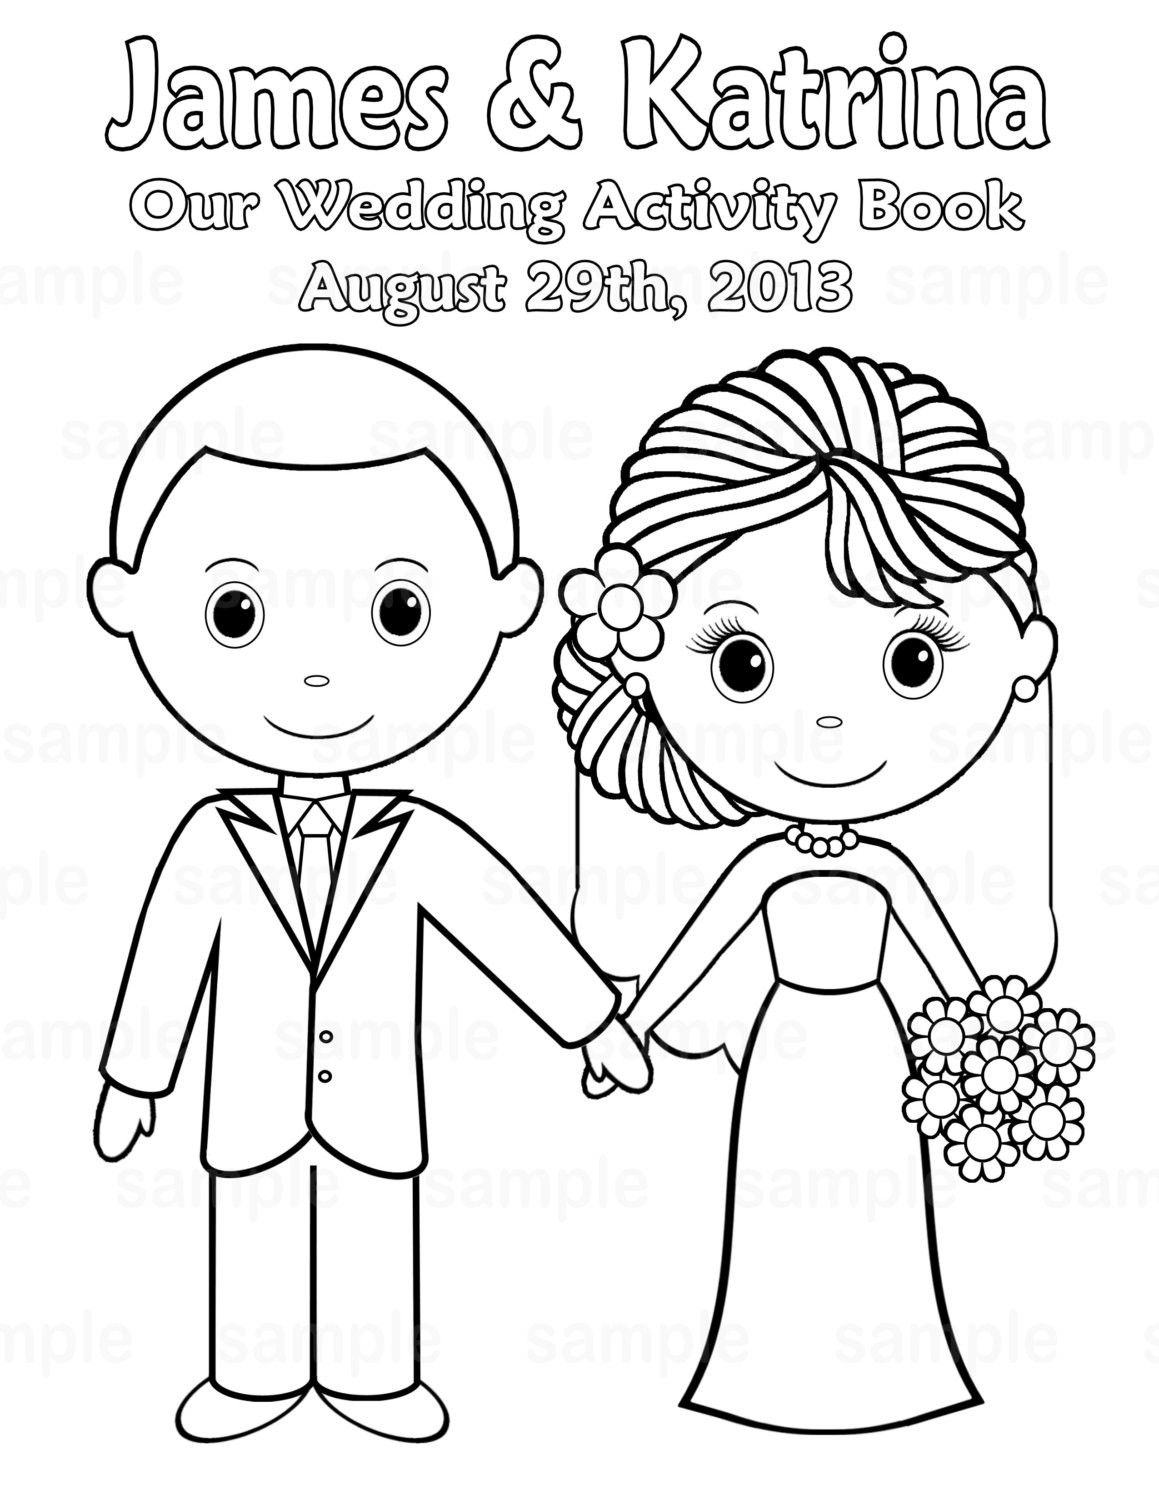 Free Printable Wedding Coloring Pages | Free Printable Wedding - Free Printable Personalized Children's Books